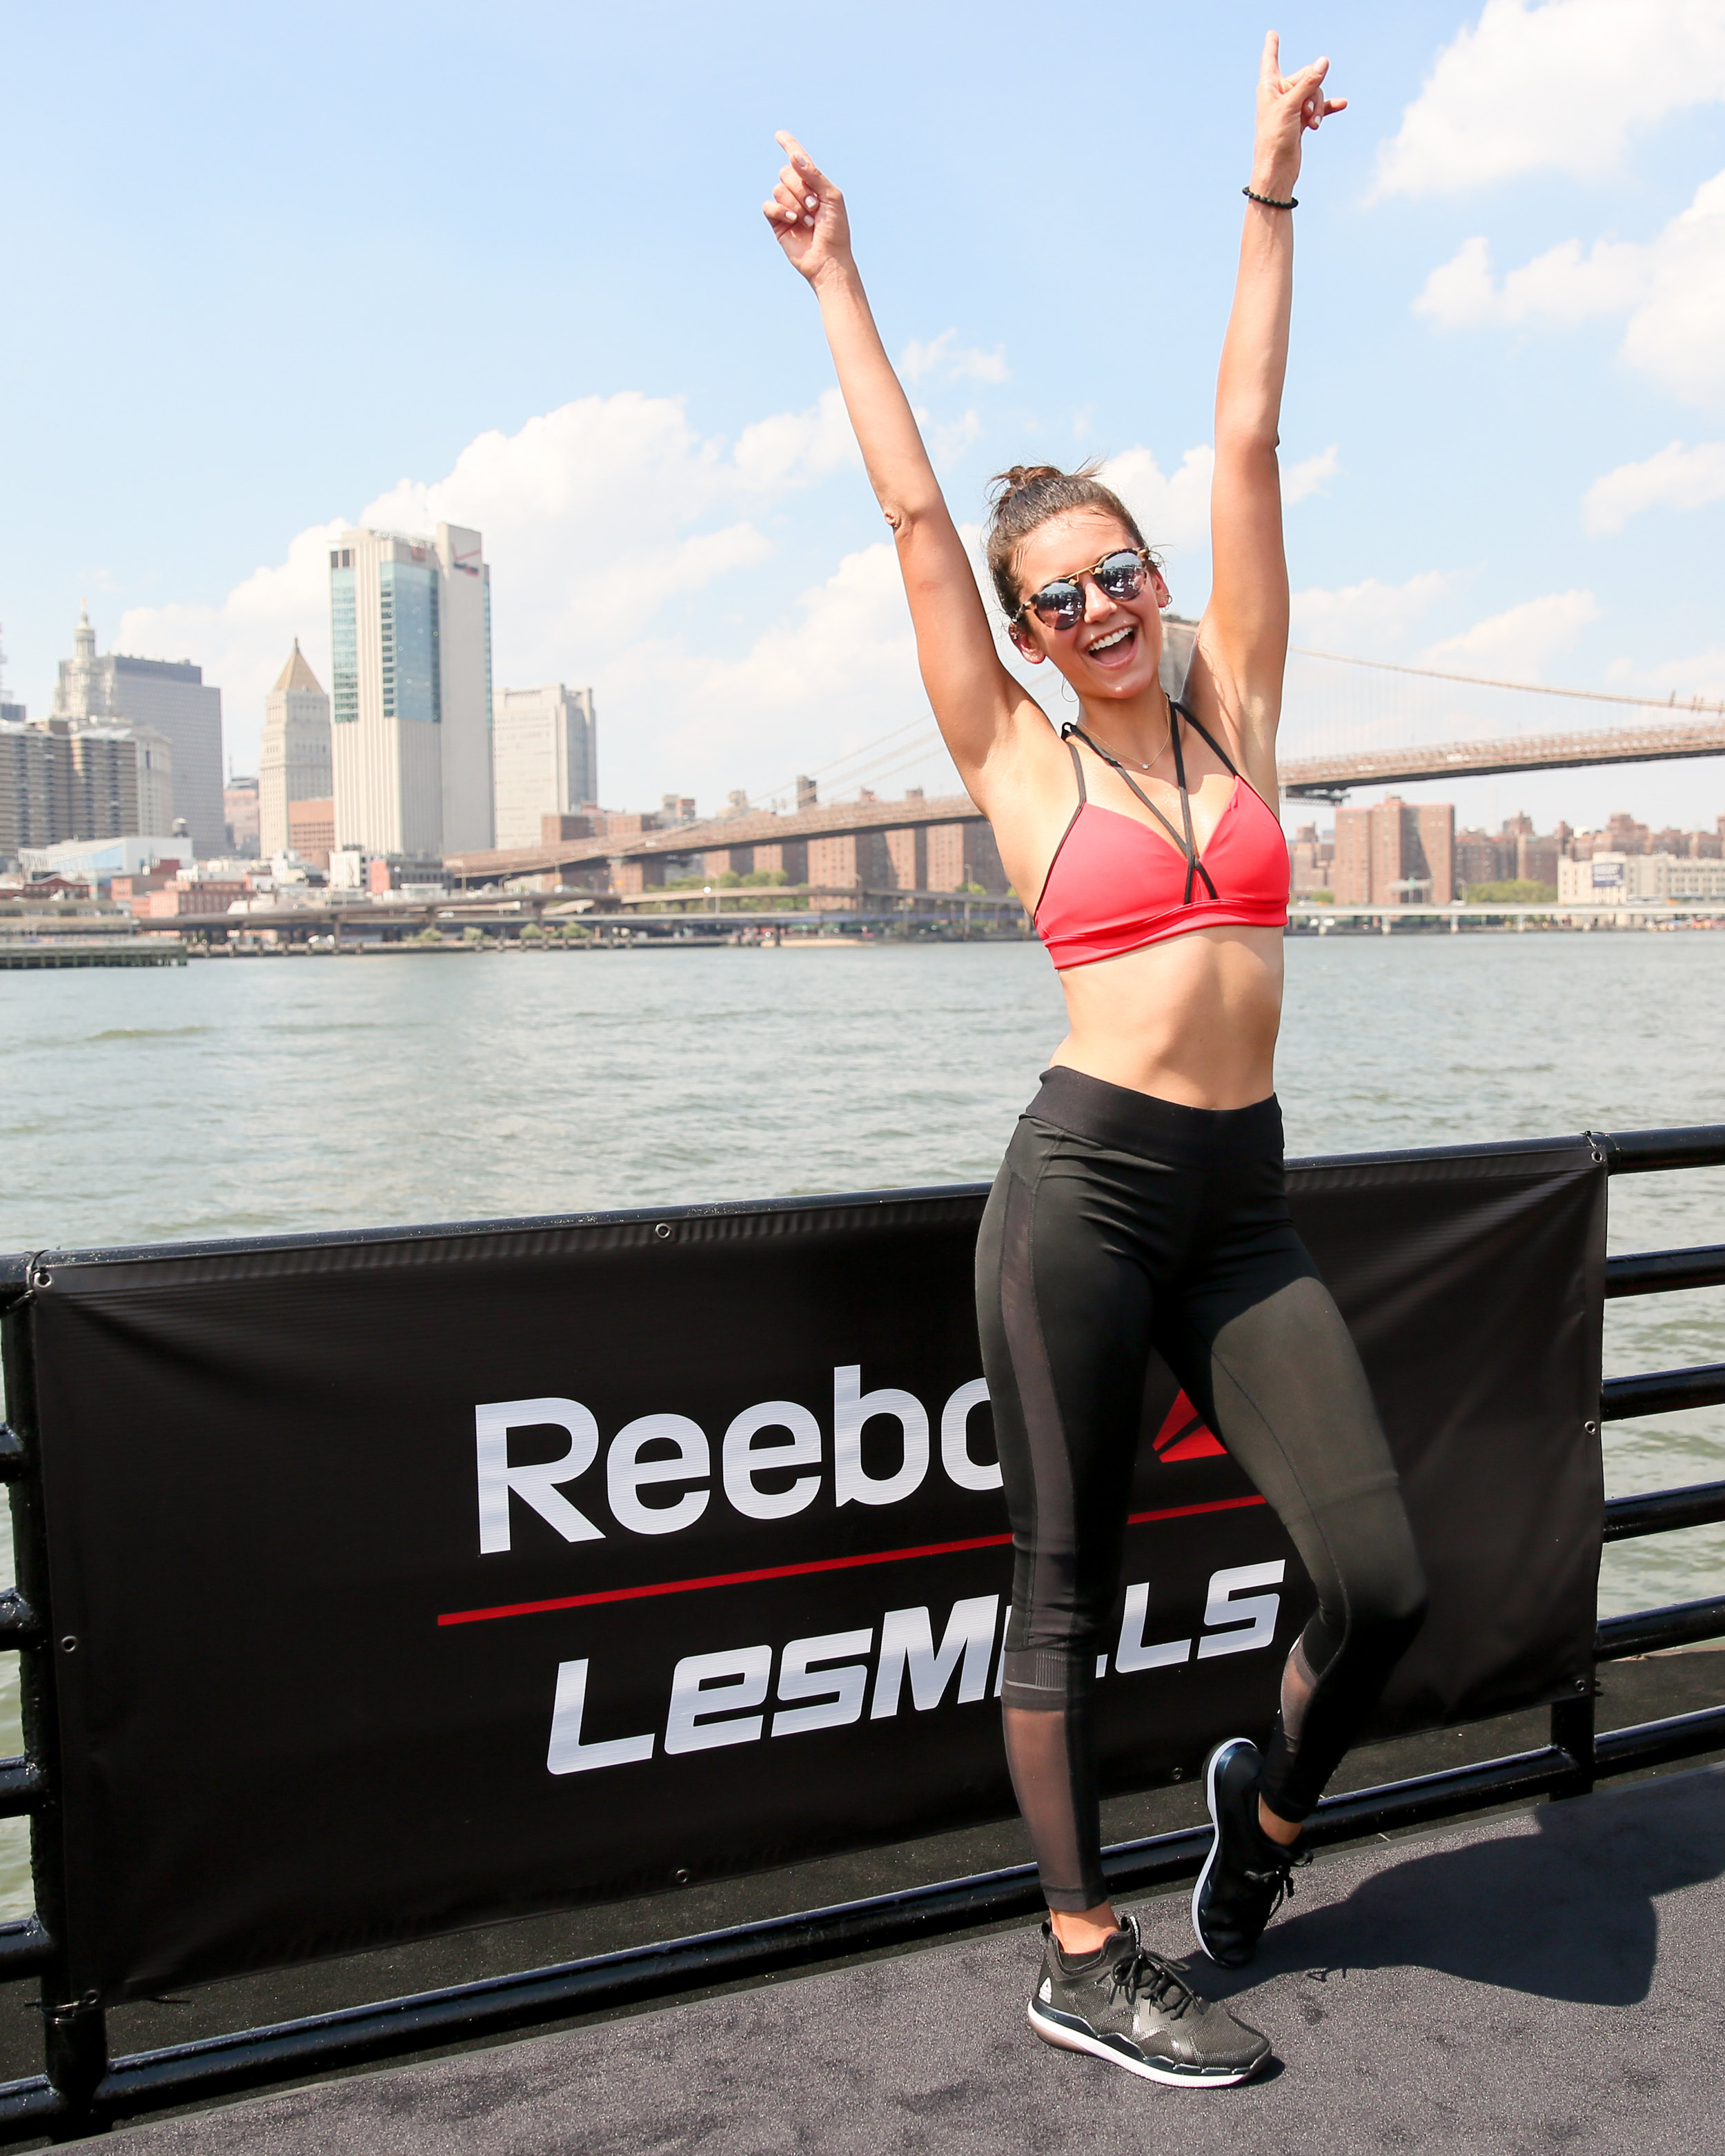 All About My Day With Reebok and Nina Dobrev Esther Santer Fashion Blog NYC Street Style Blogger Outfit OOTD Trendy Workout Gear Moving Barge Trainers Celebrity Ambassador Brunch The Vampire Diaries Celeb GRIT Girl Squad  Women Weights Bodyflow Body.jpg